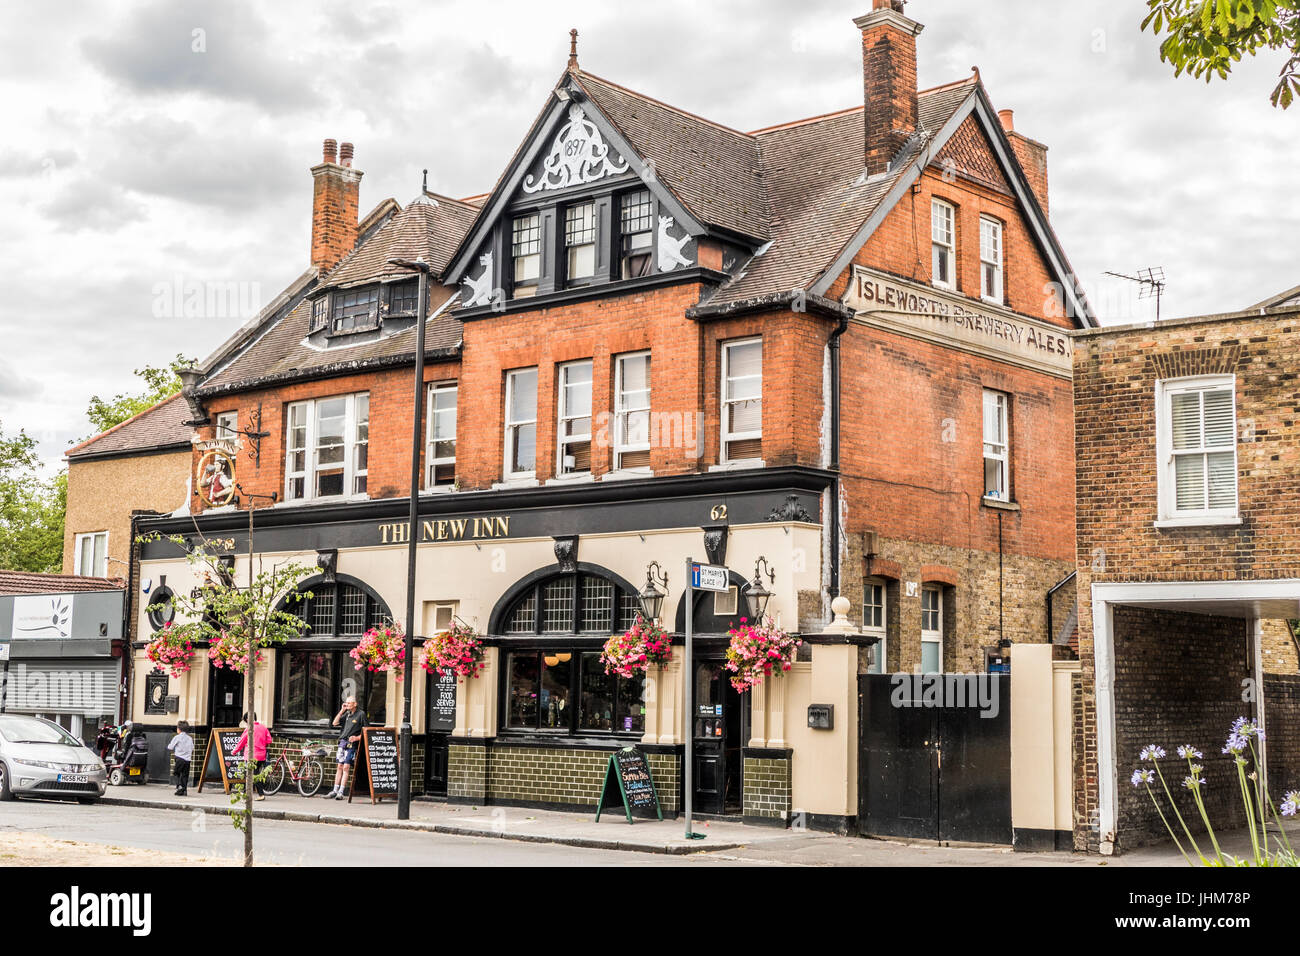 Exterior of The New Inn pub in Ealing, London W5, England, UK. - Stock Image